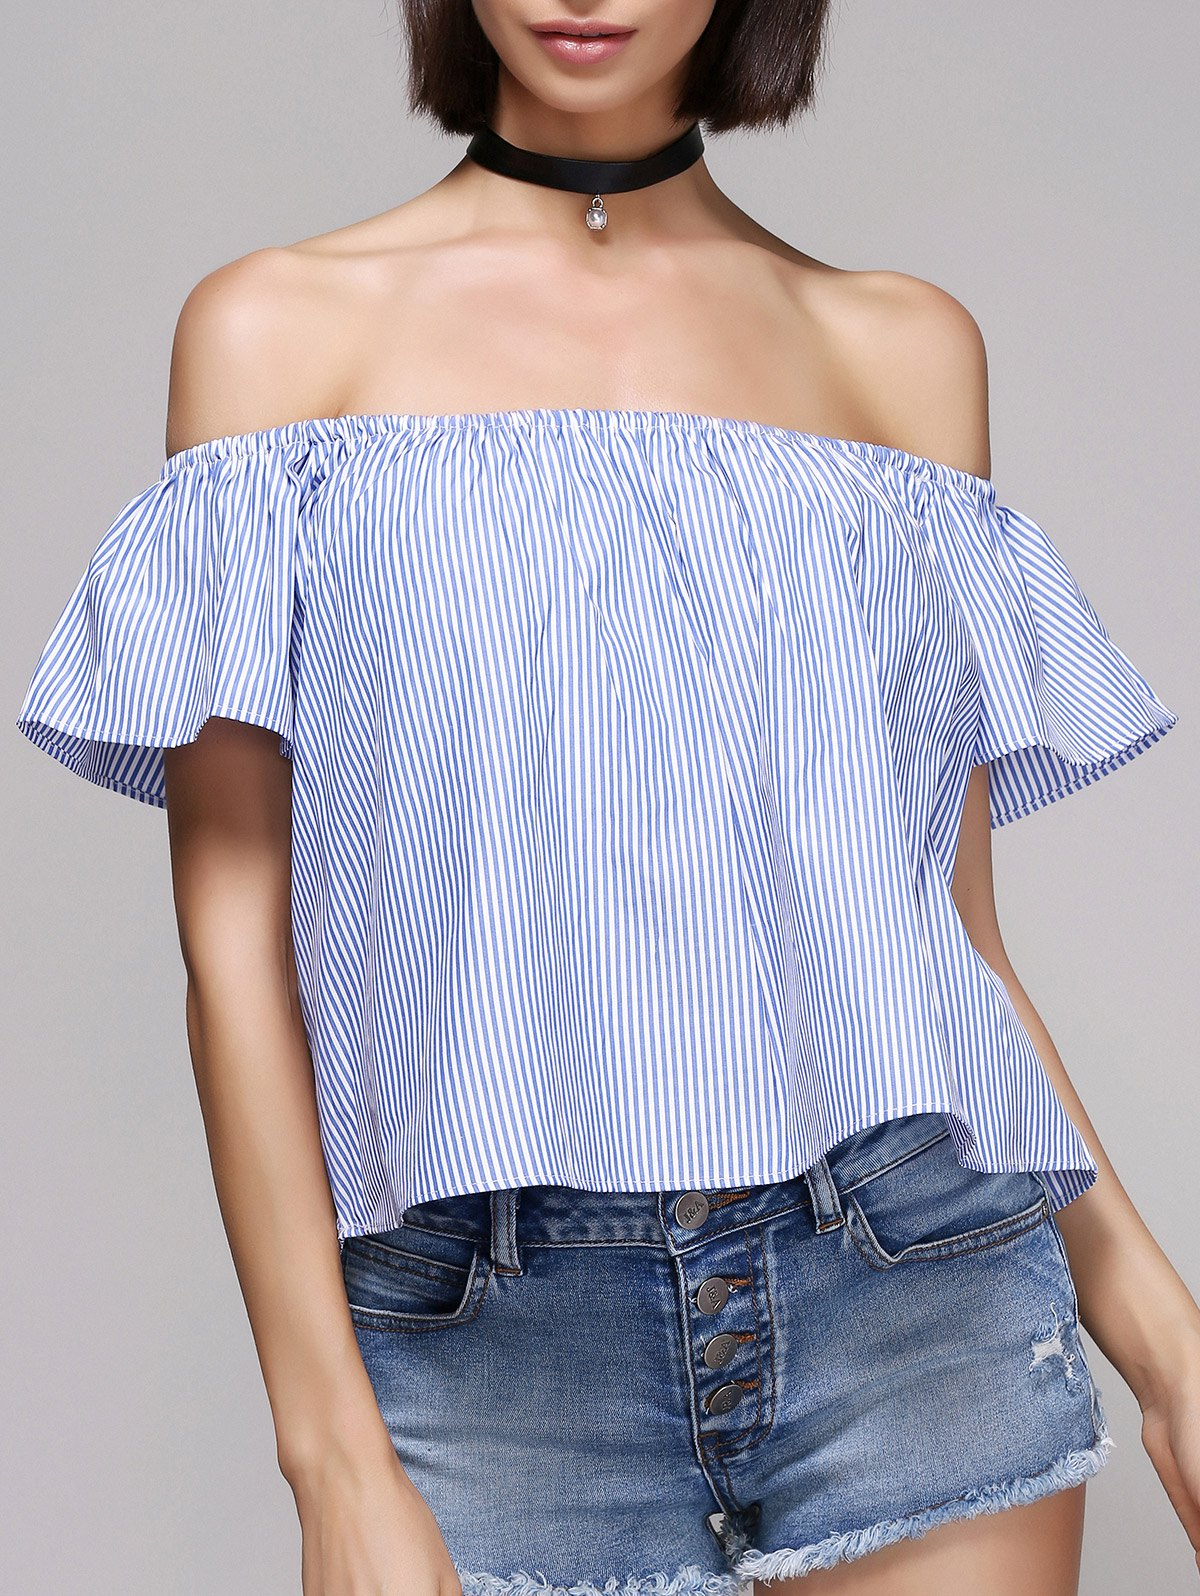 Stylish Pinstriped Off The Shoulder Blouse For Women - BLUE/WHITE L